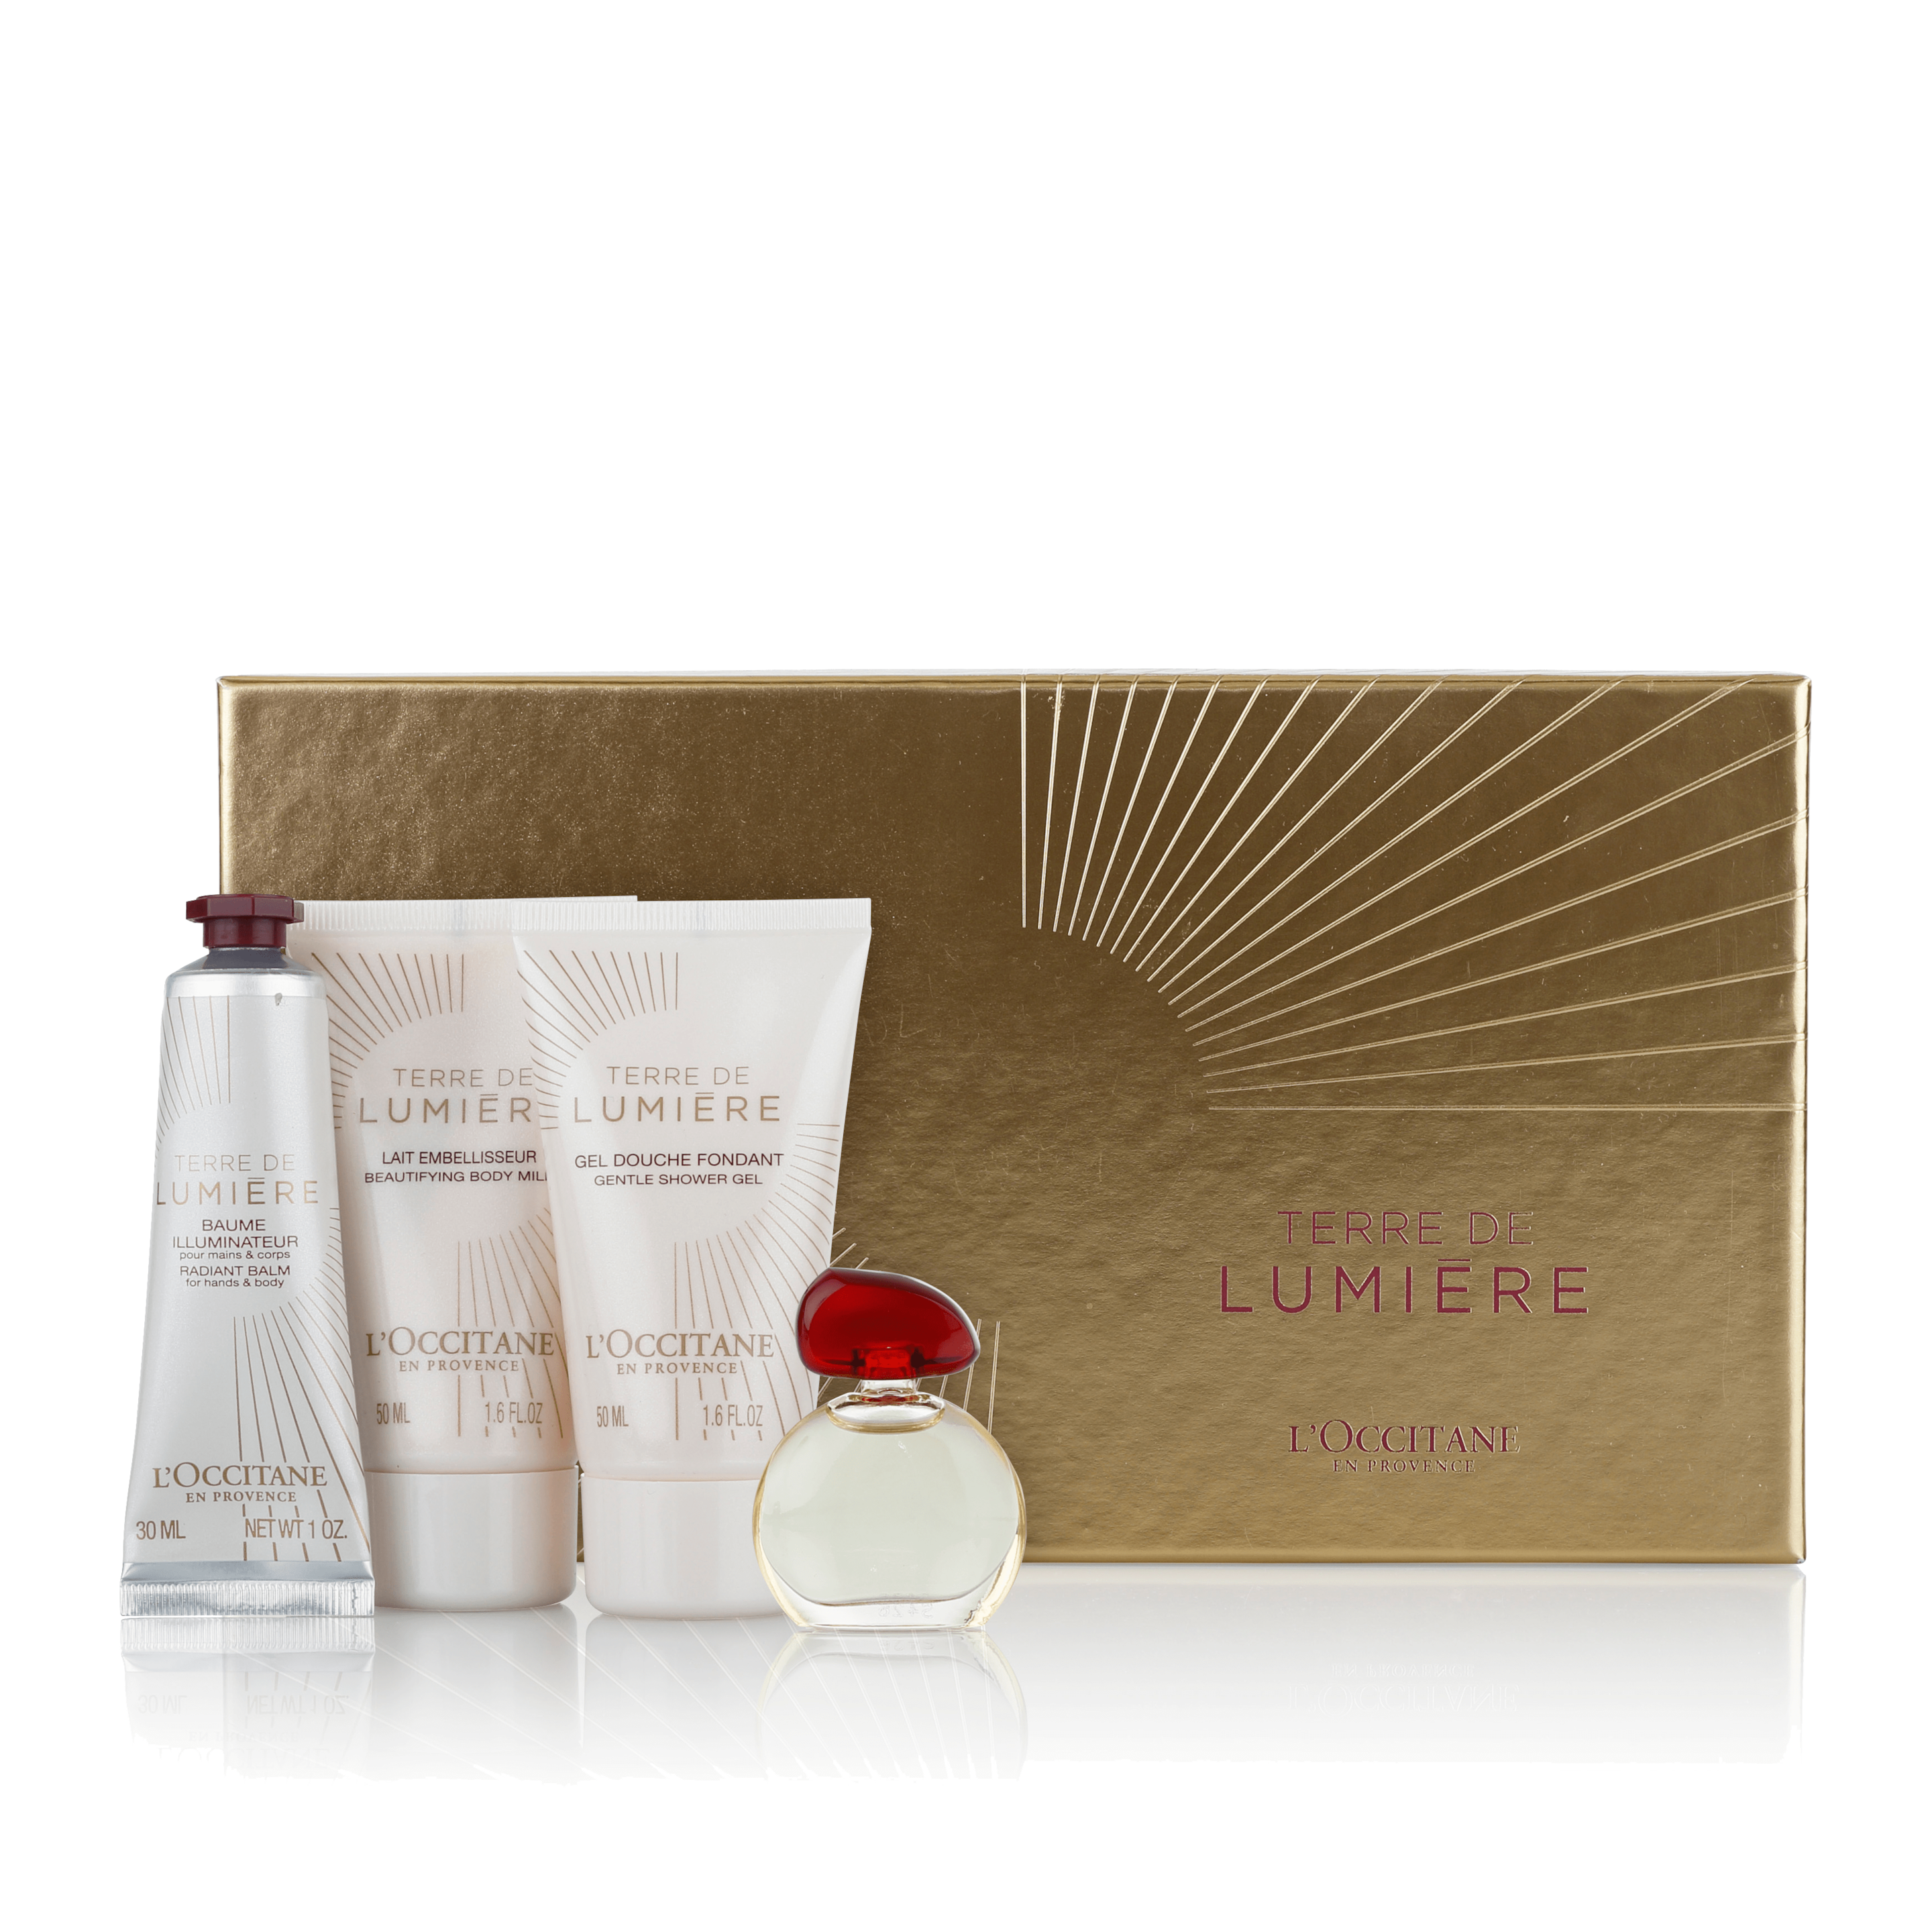 Terre de Lumiere Travel Collection